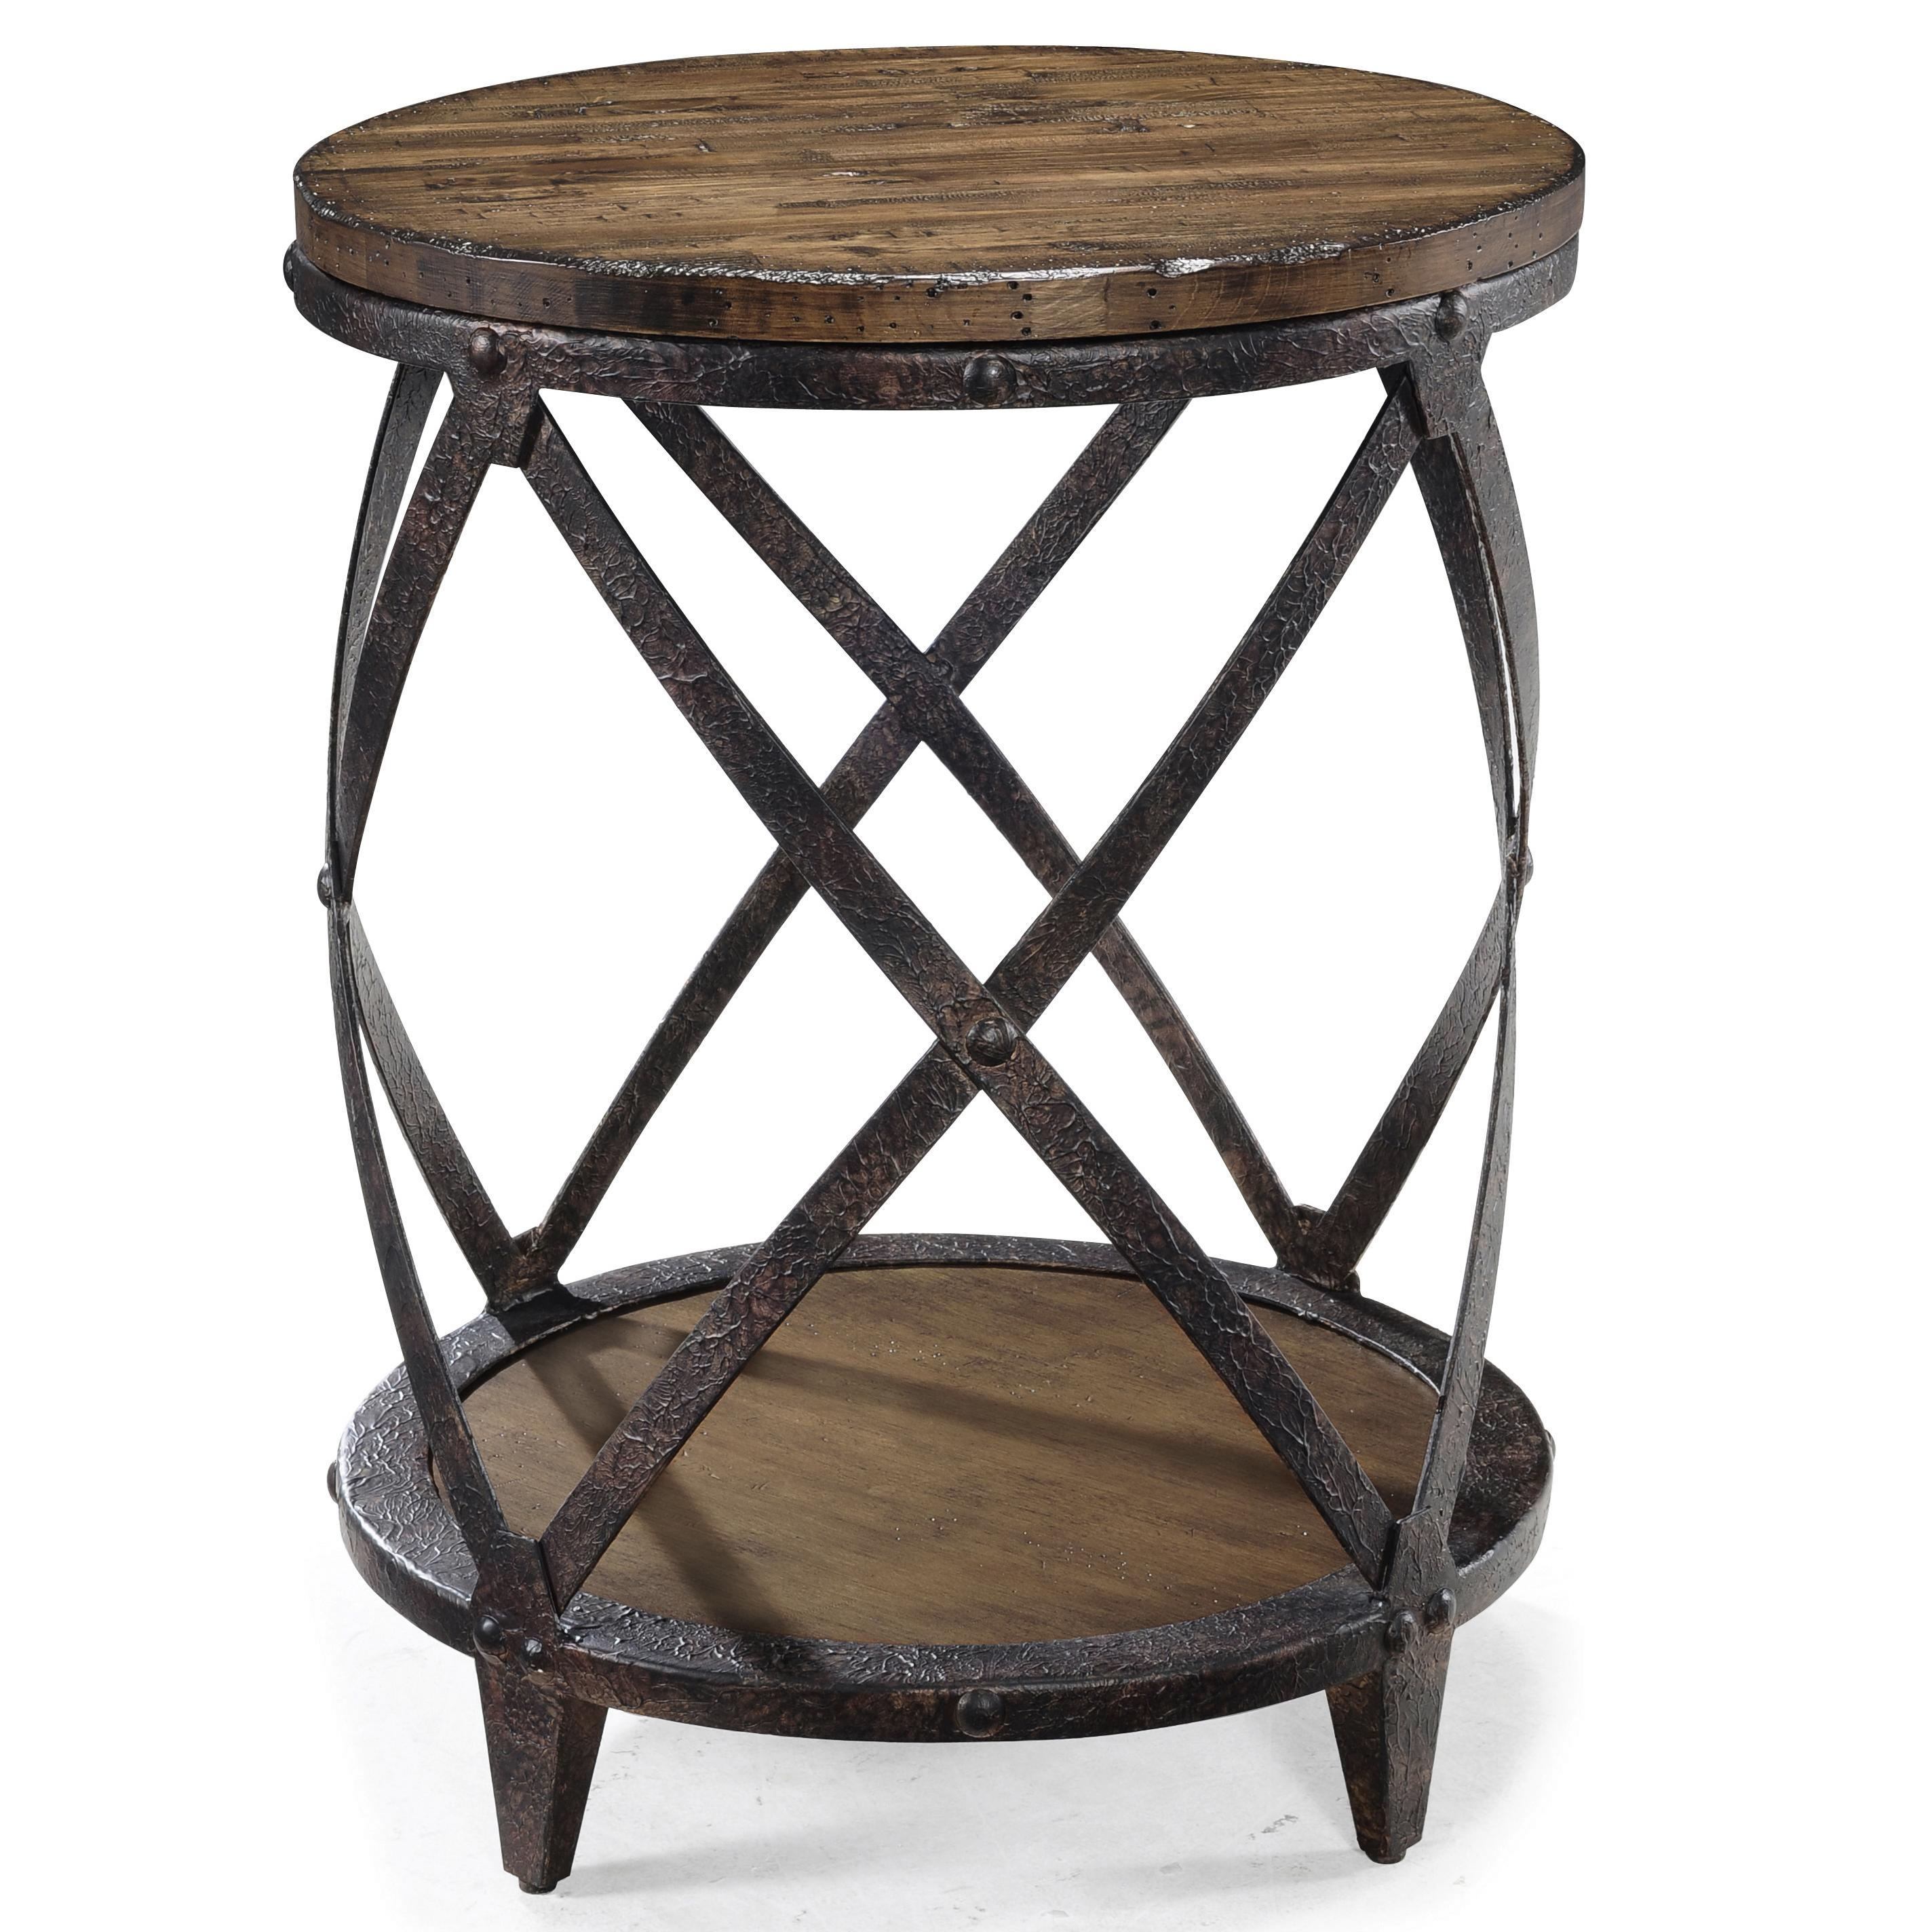 rustic accent table tables round end with iron legs magnussen lamps small antique drop leaf garden umbrella weights windmill clock silver and glass western floor style side